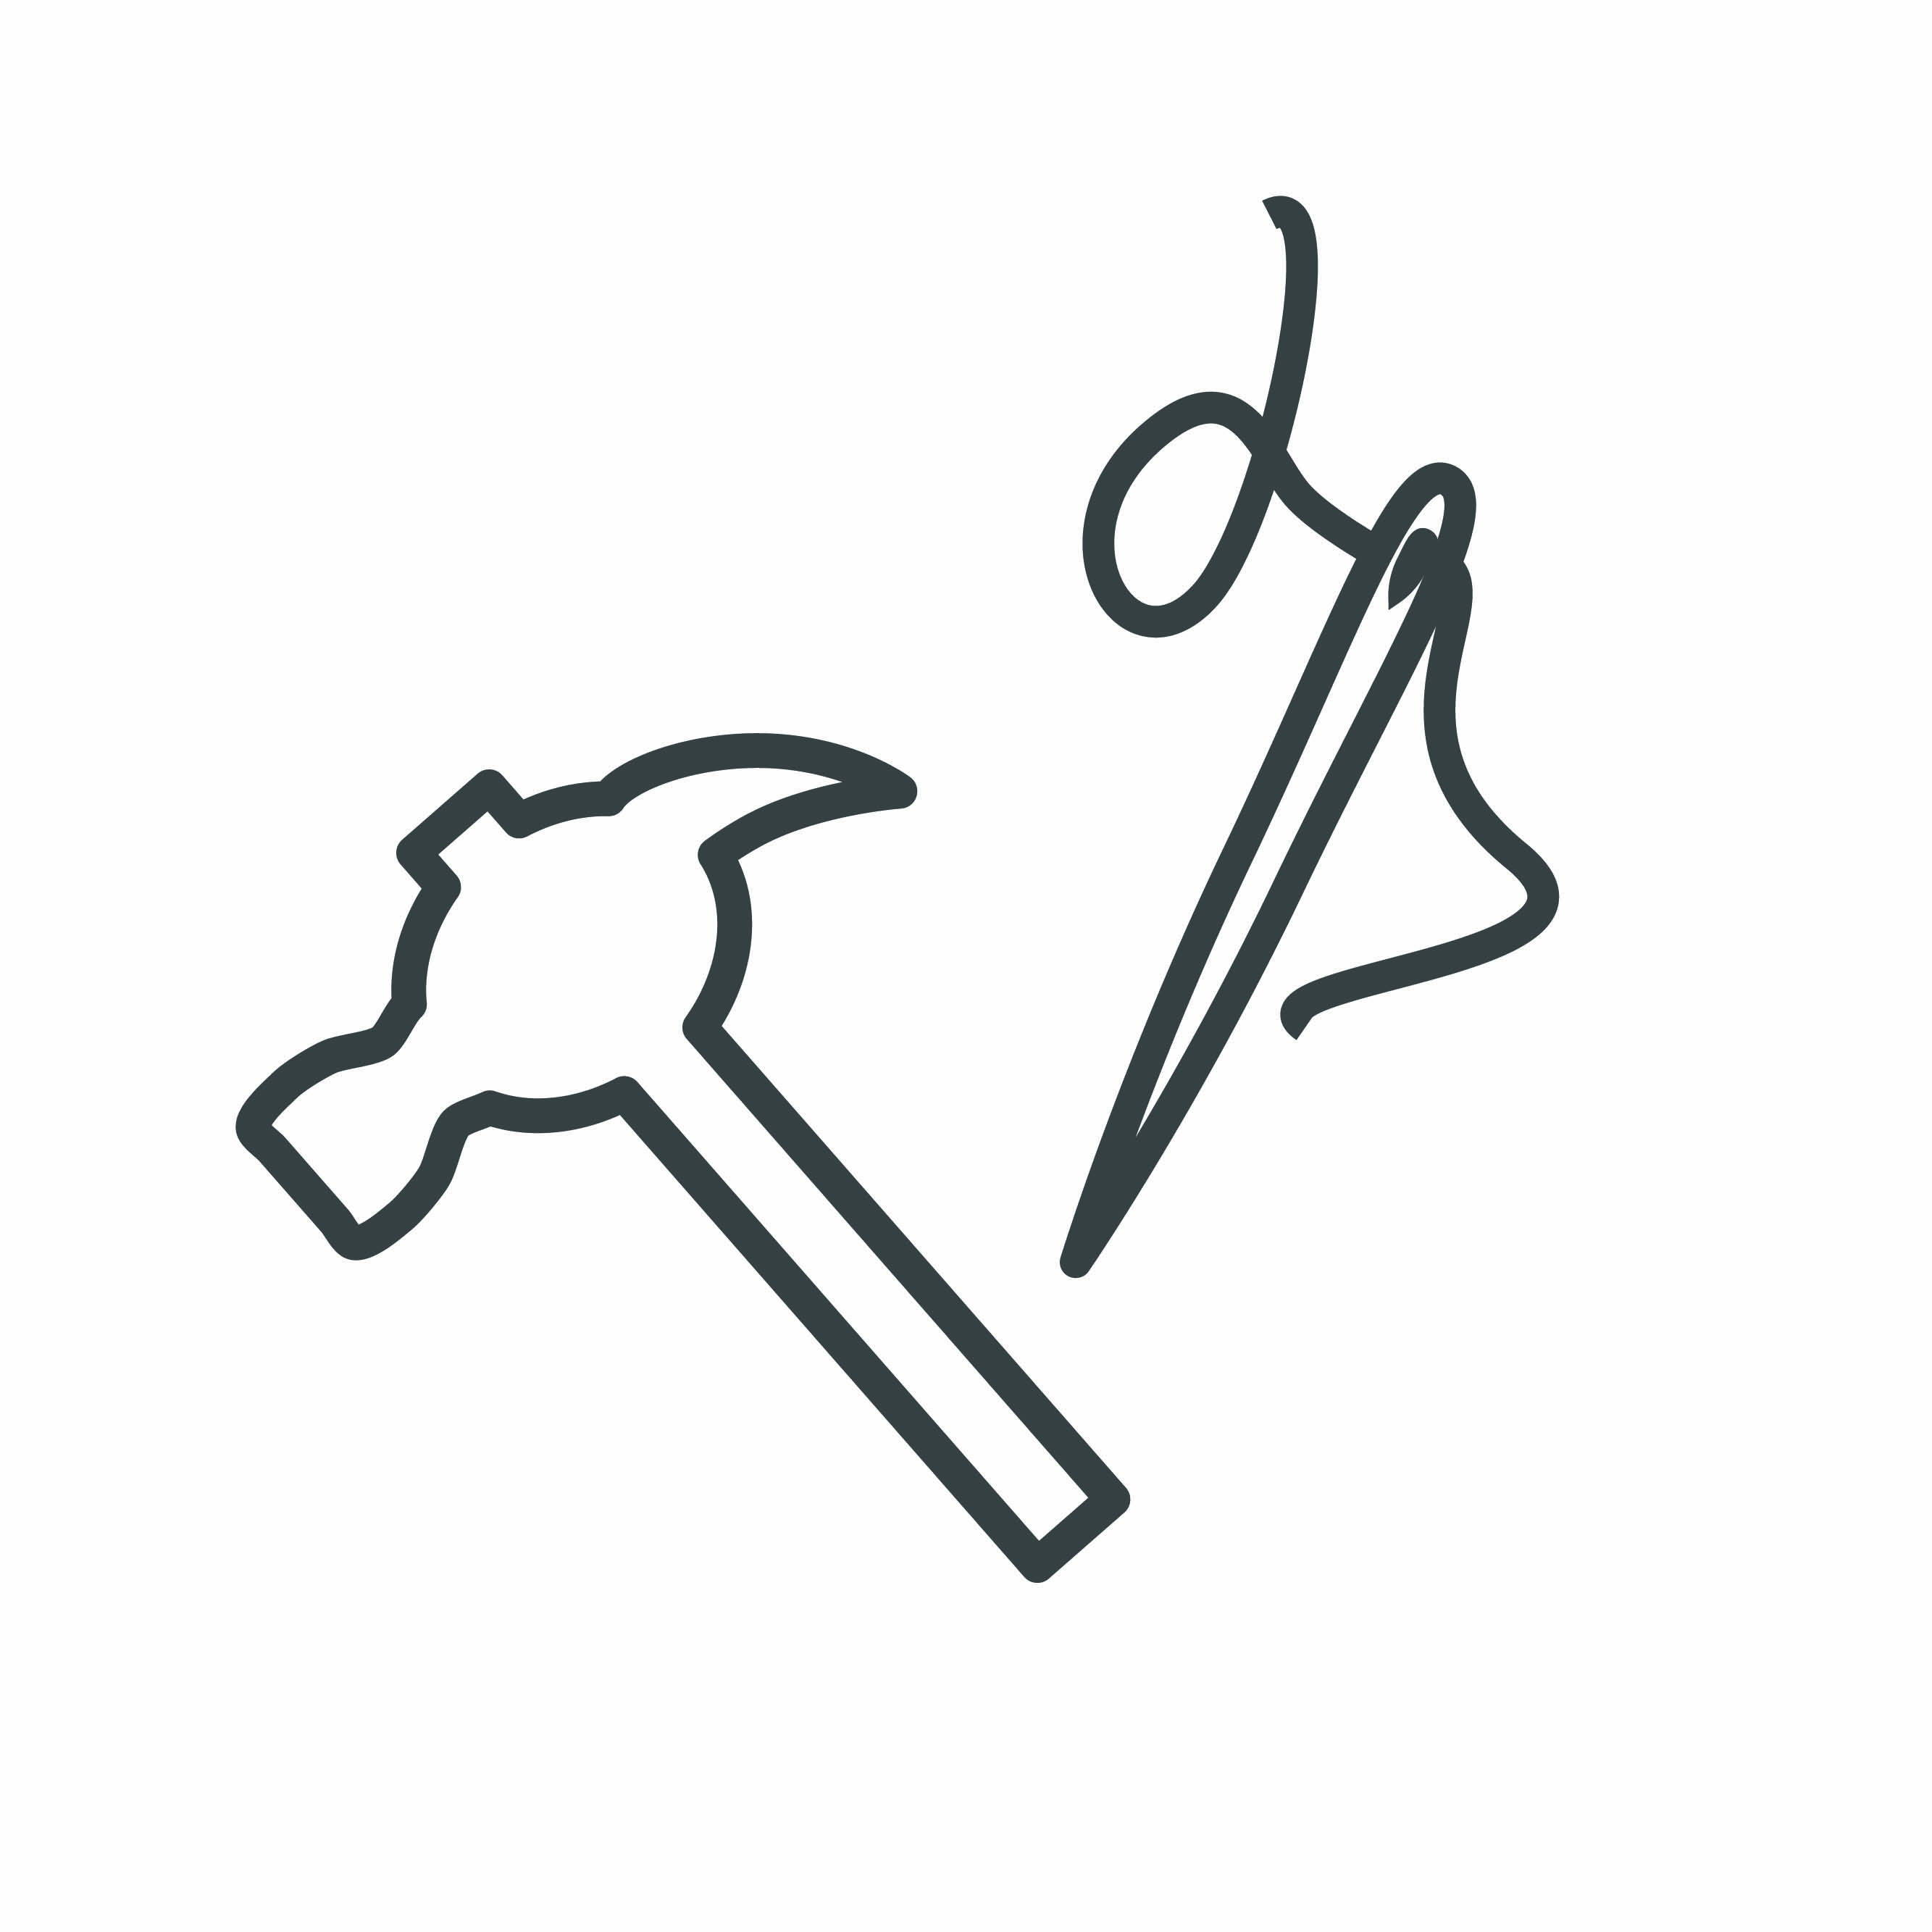 Hammer and Sewing needle icon